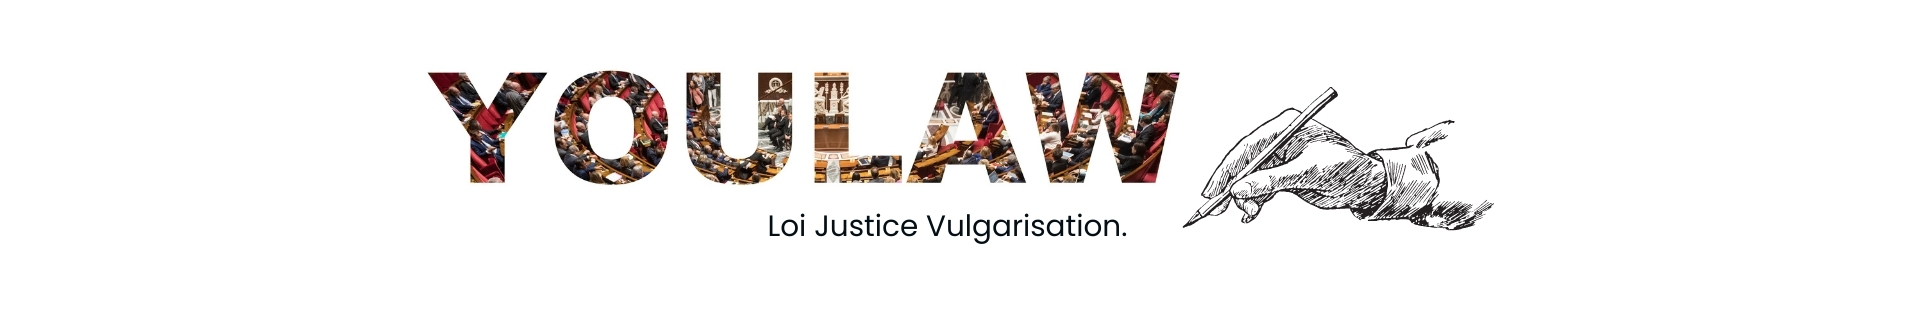 Youlaw justice loi vulgarisation juridique